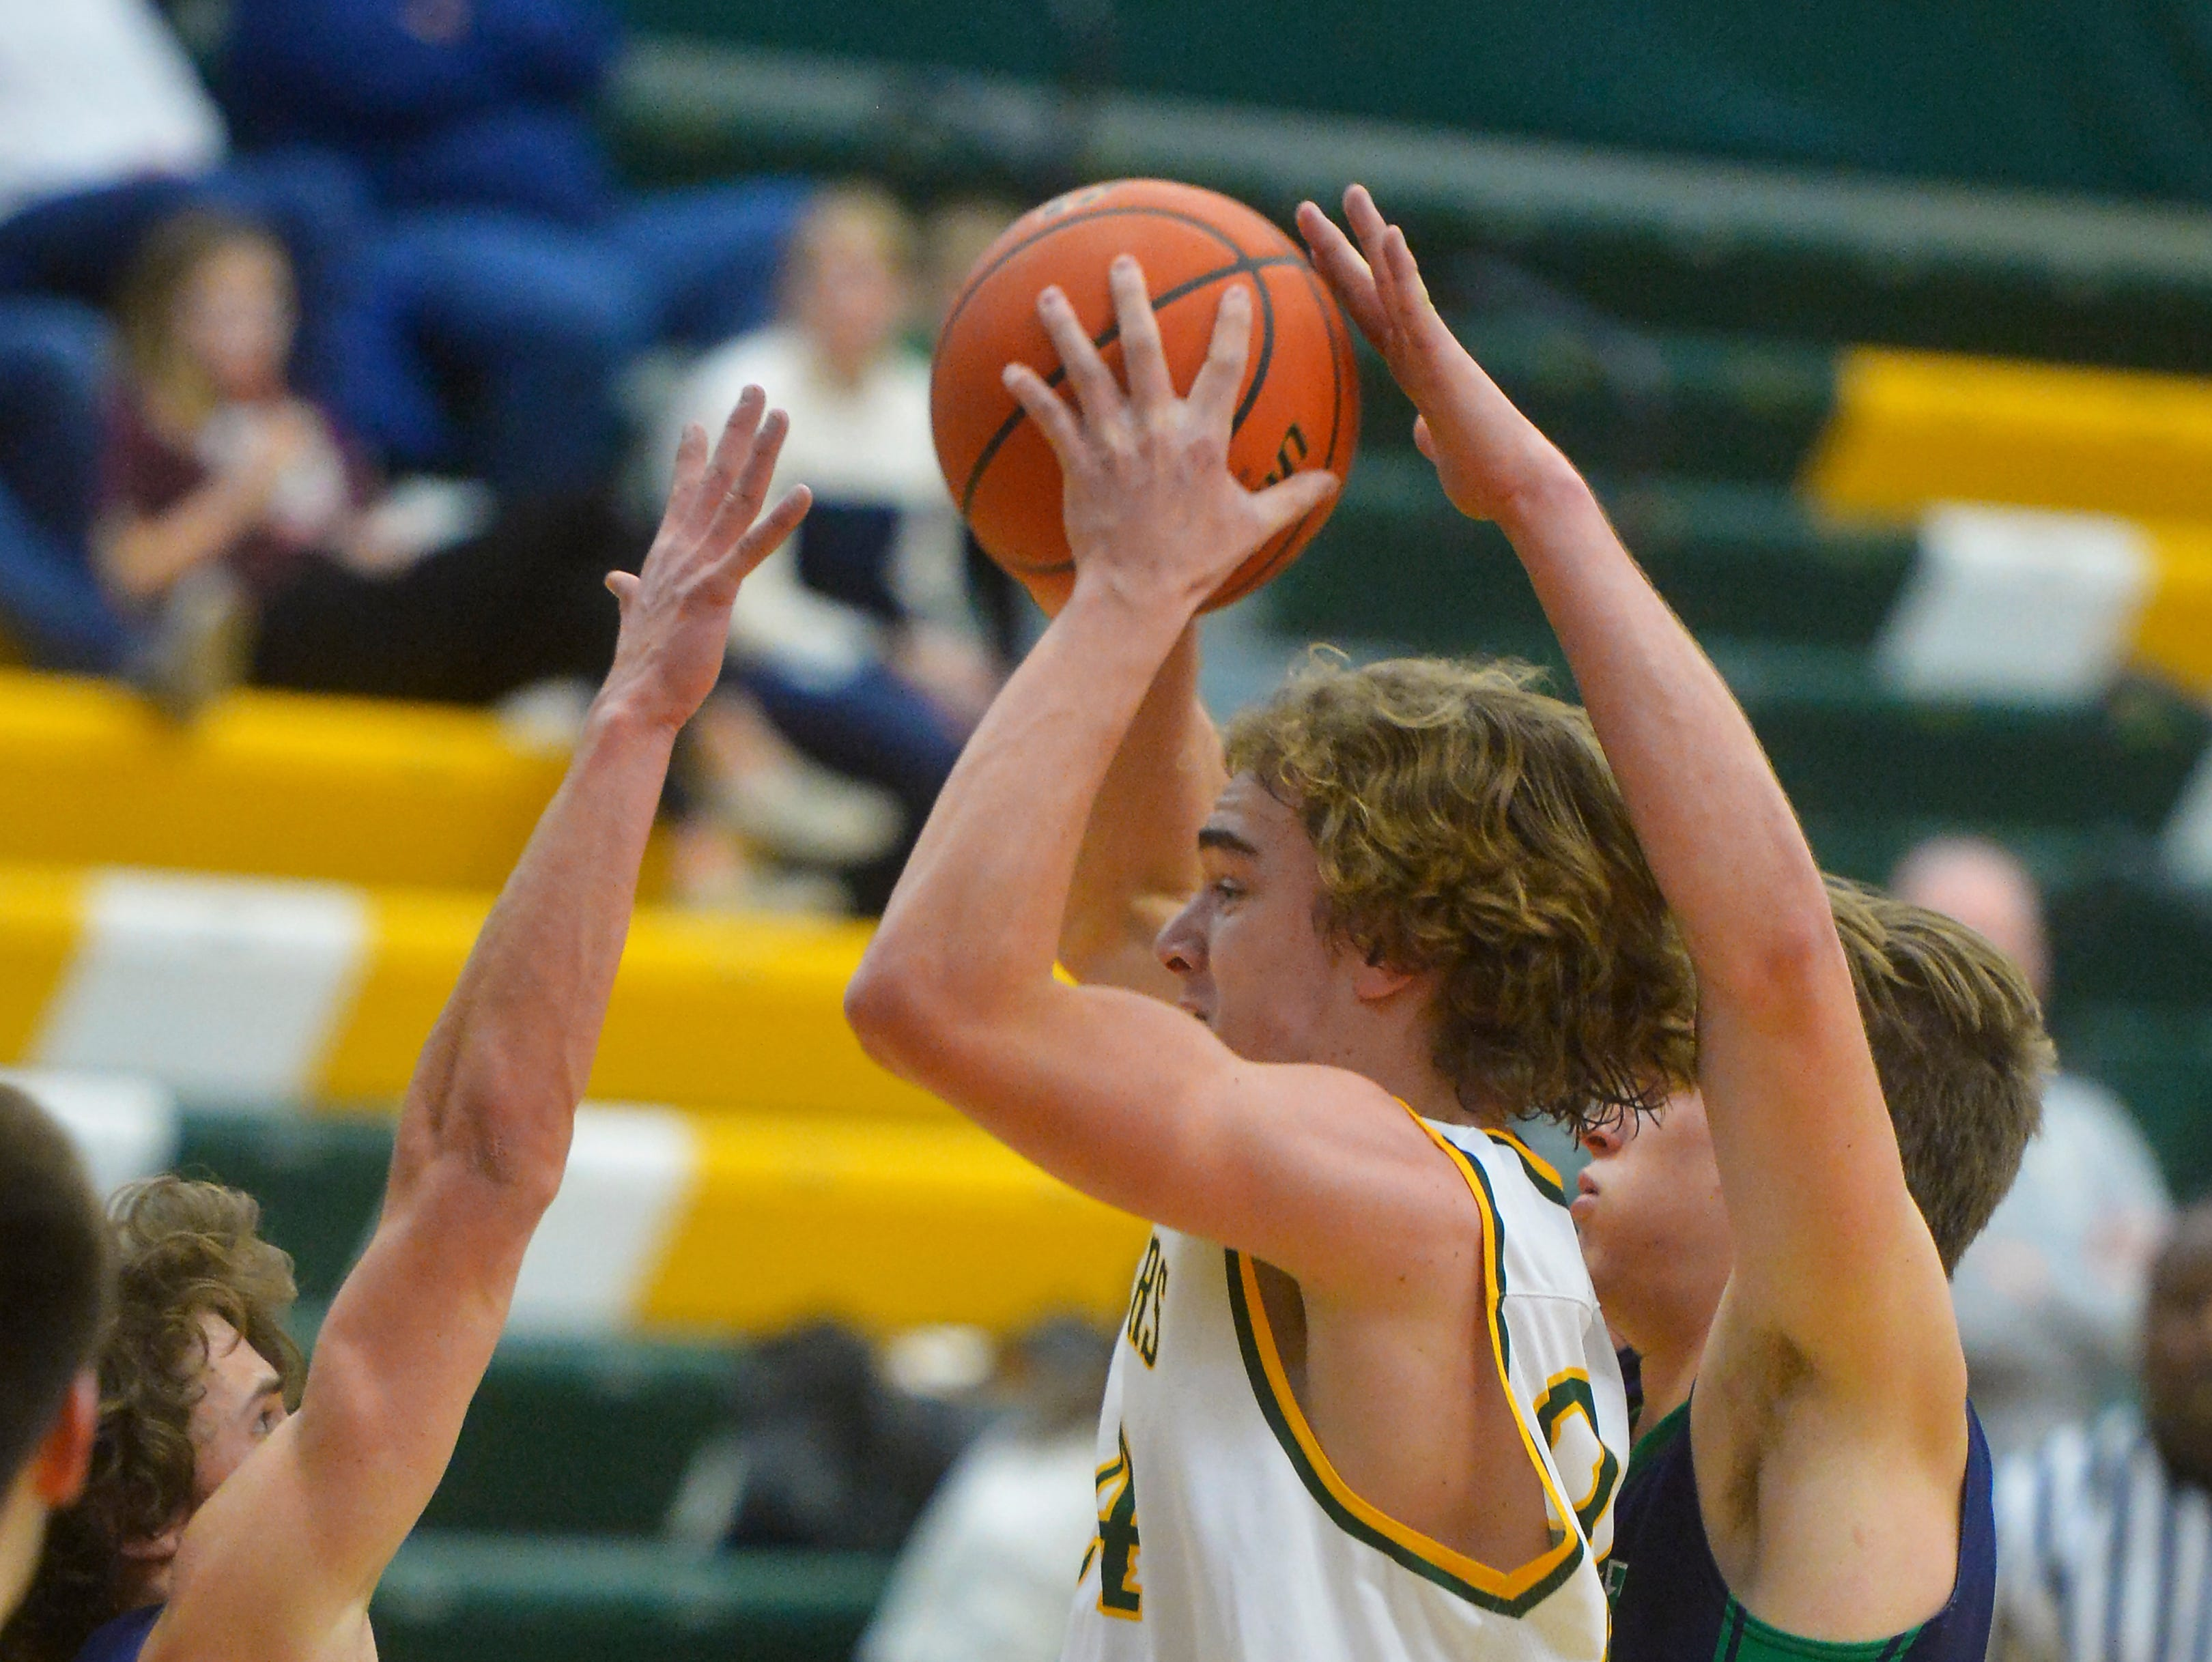 CMR's Kaden Gardner looks for an open teammate during Friday night's basketball game against Glacier in the CMR Fieldhouse.